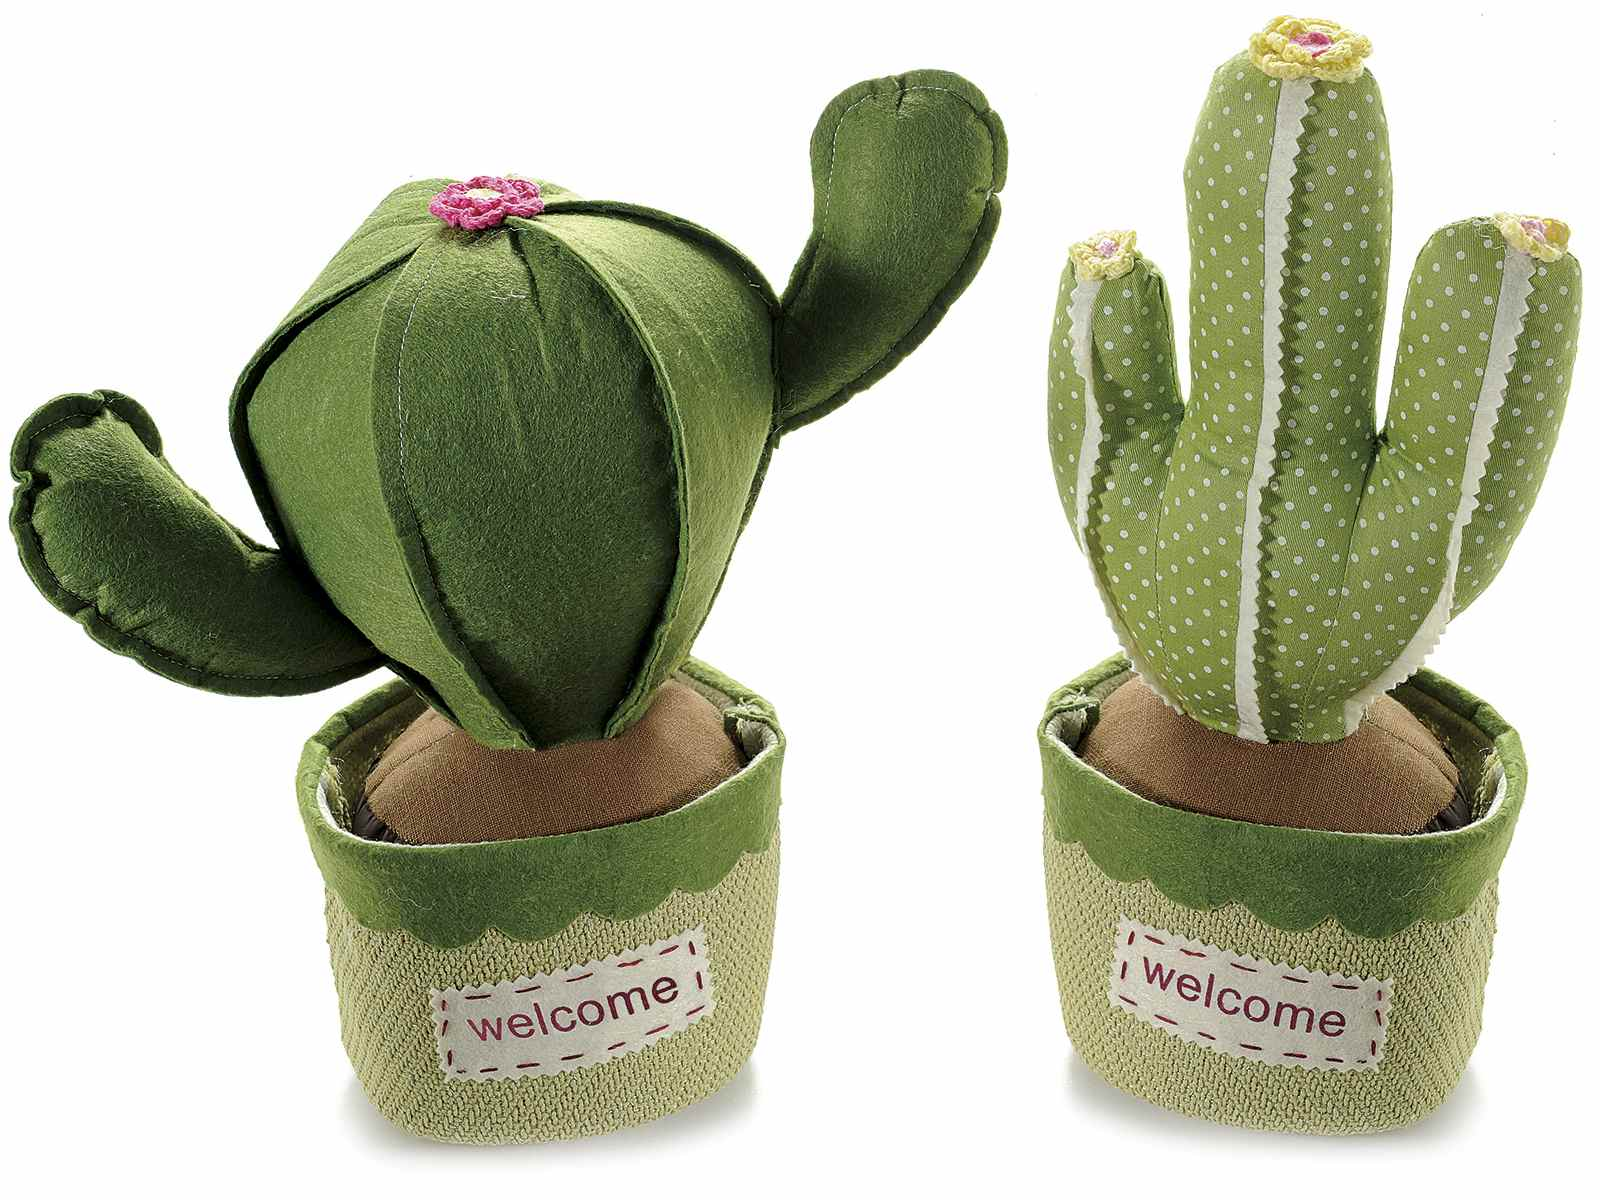 Sujetapuertas cactus tela art from italy for Cactus enanos por mayor